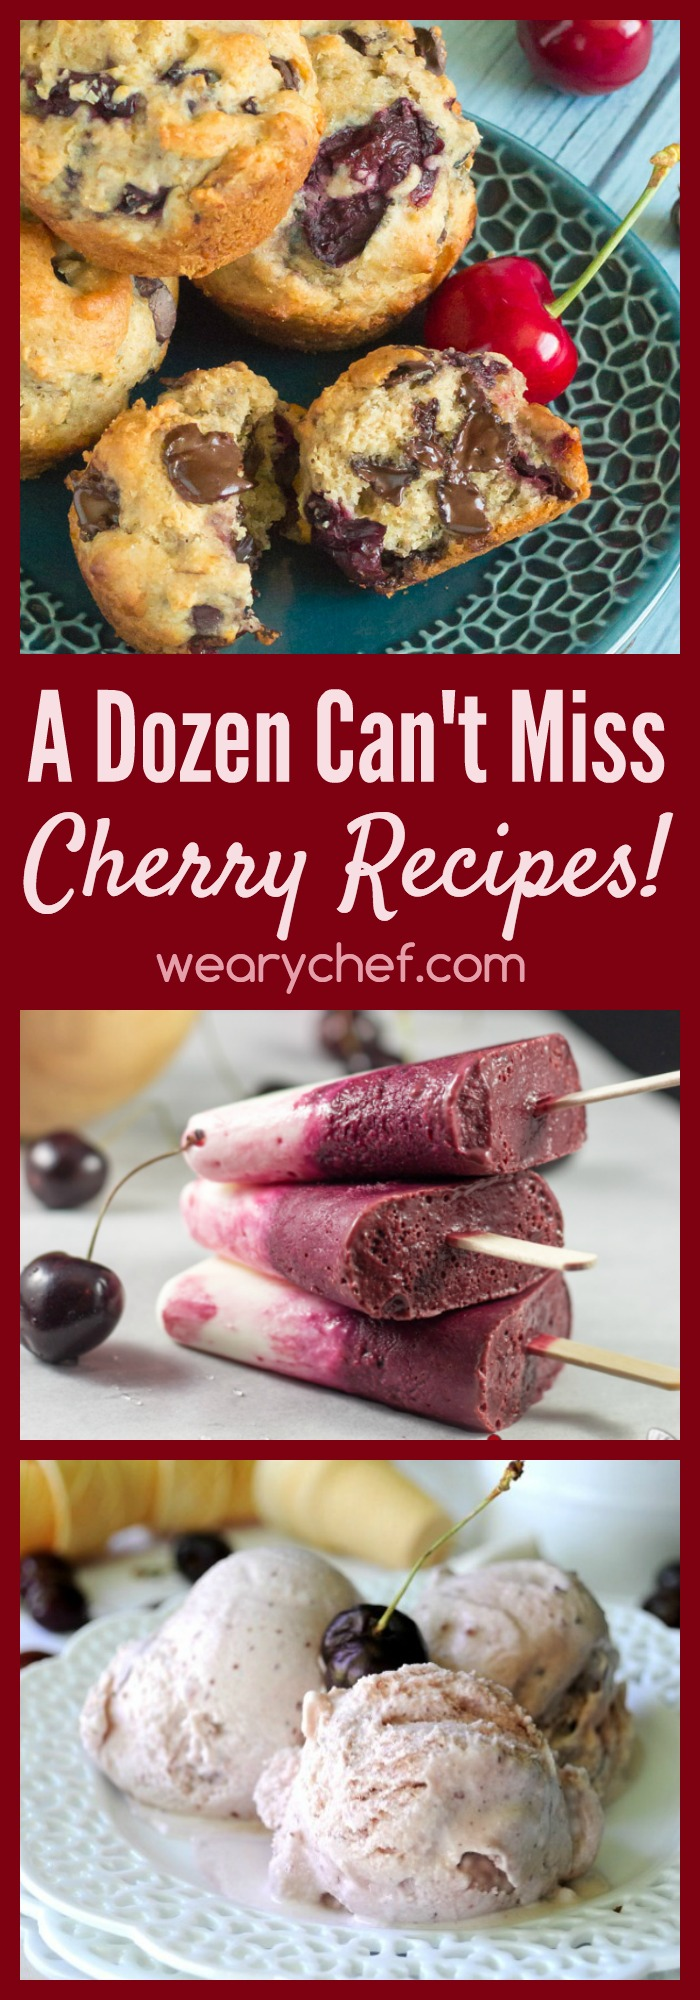 From pies and tarts to cocktails and ice cream, you don't want to miss this list of cherry recipes!